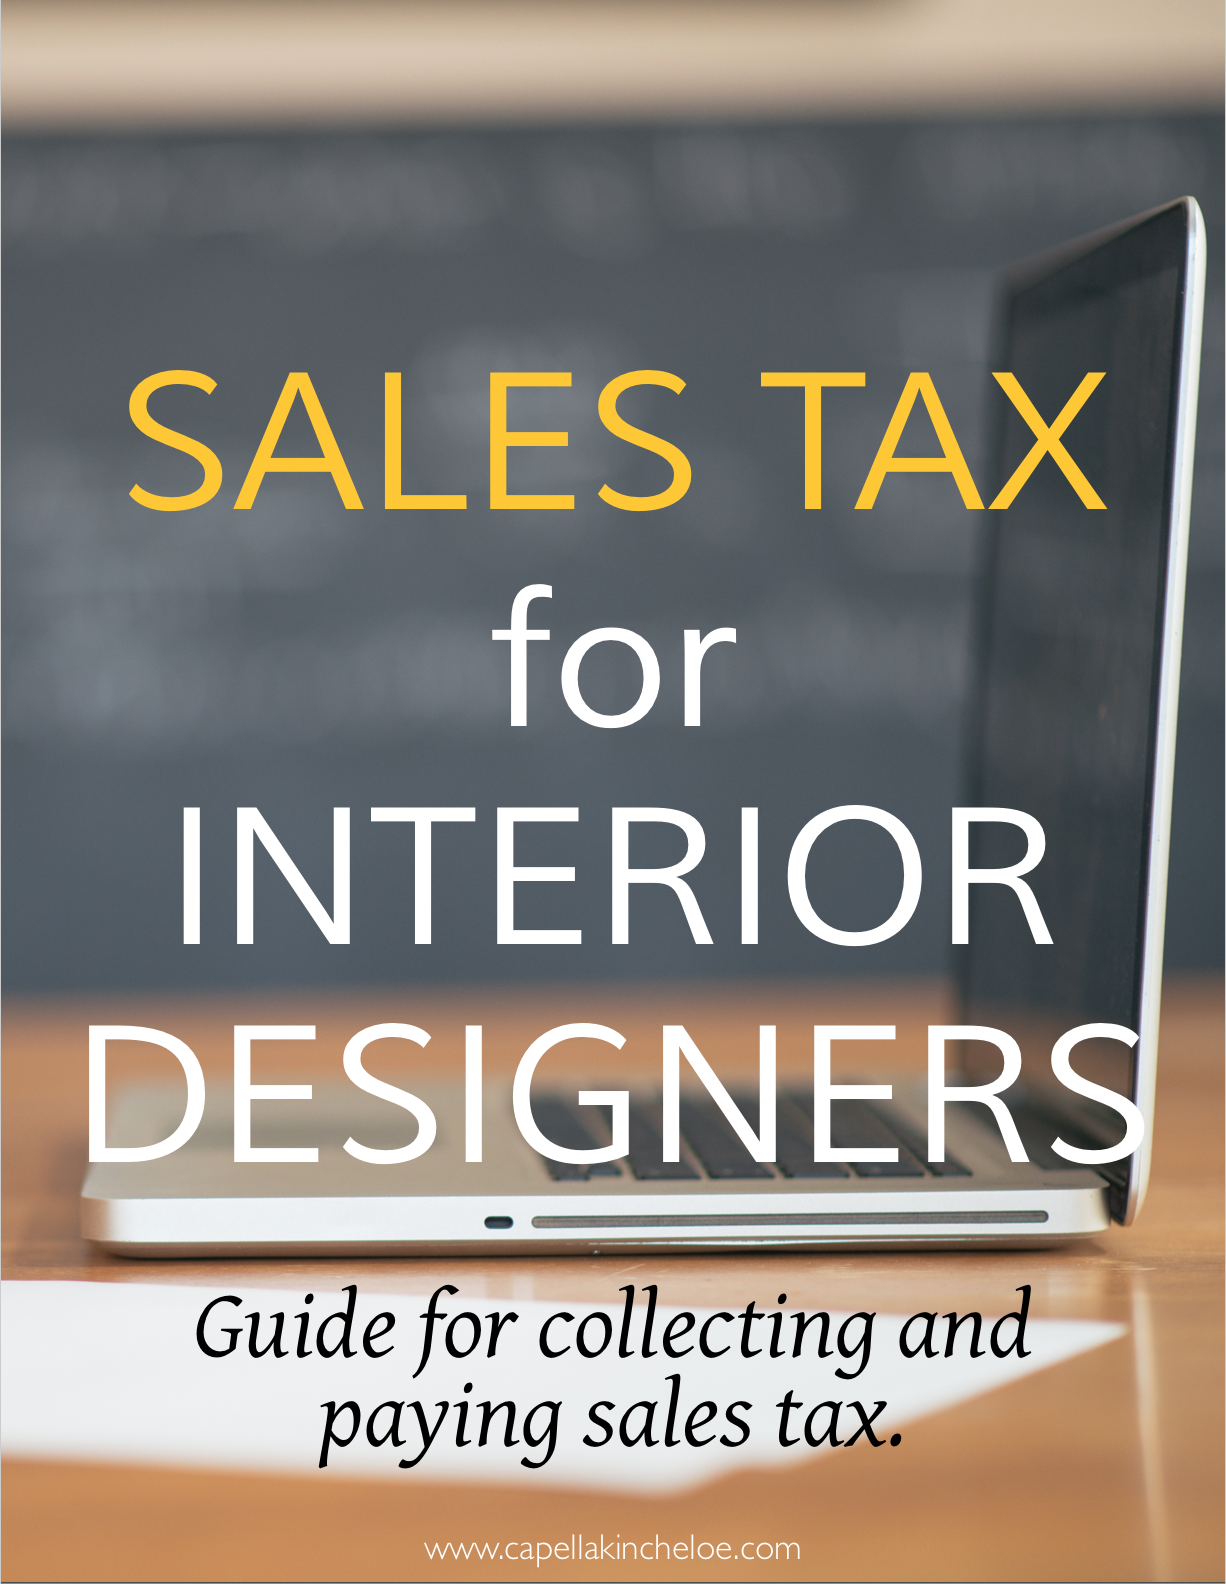 sales tax basics for interior designers.  Your guide for collecting and paying sales tax.